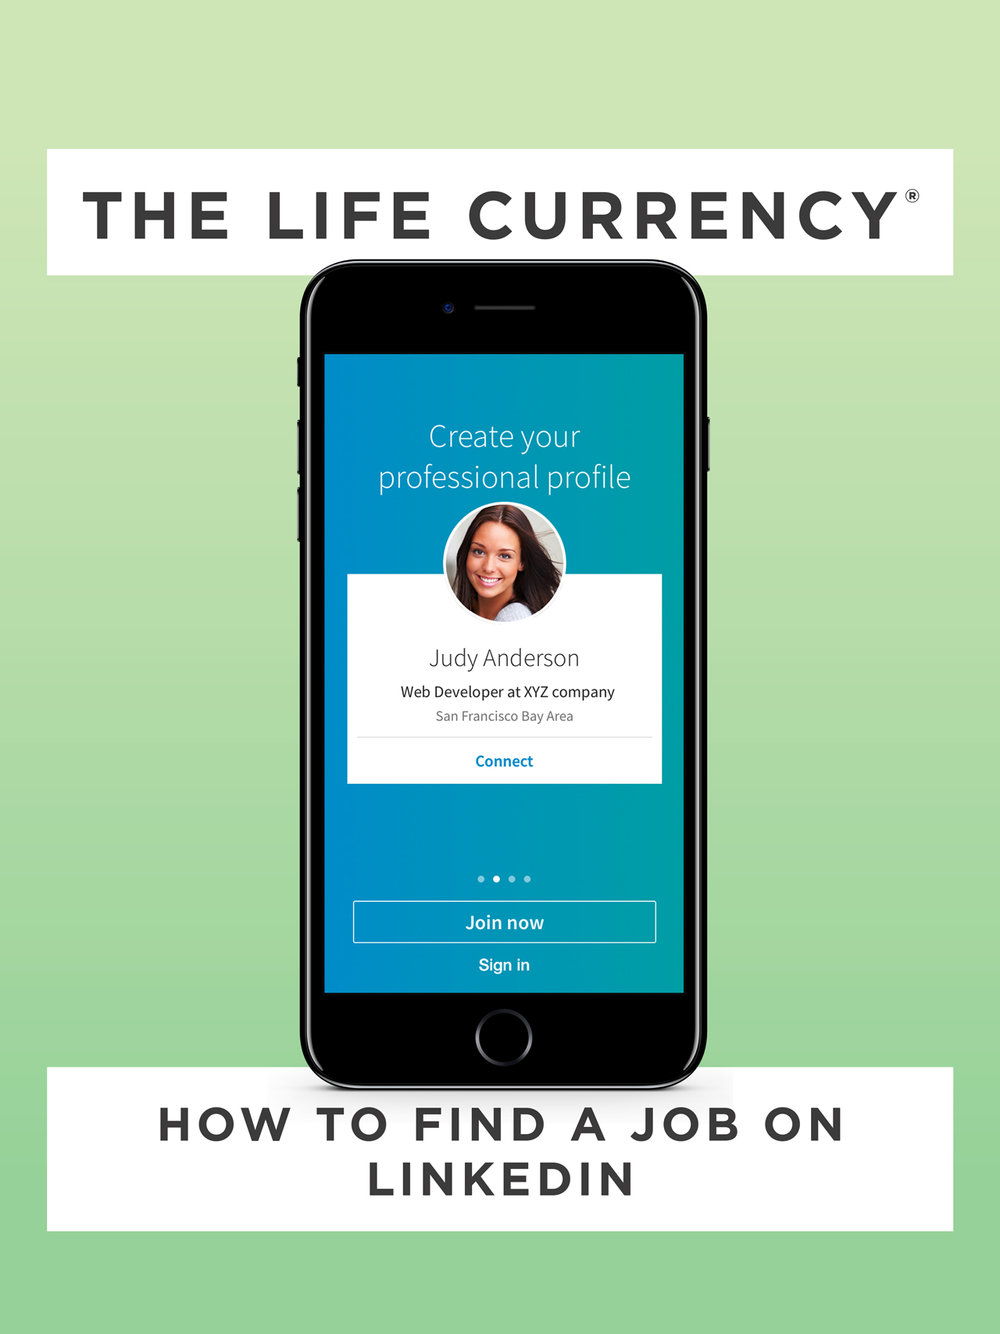 The Life Currency - How to Find a Job on LinkedIn